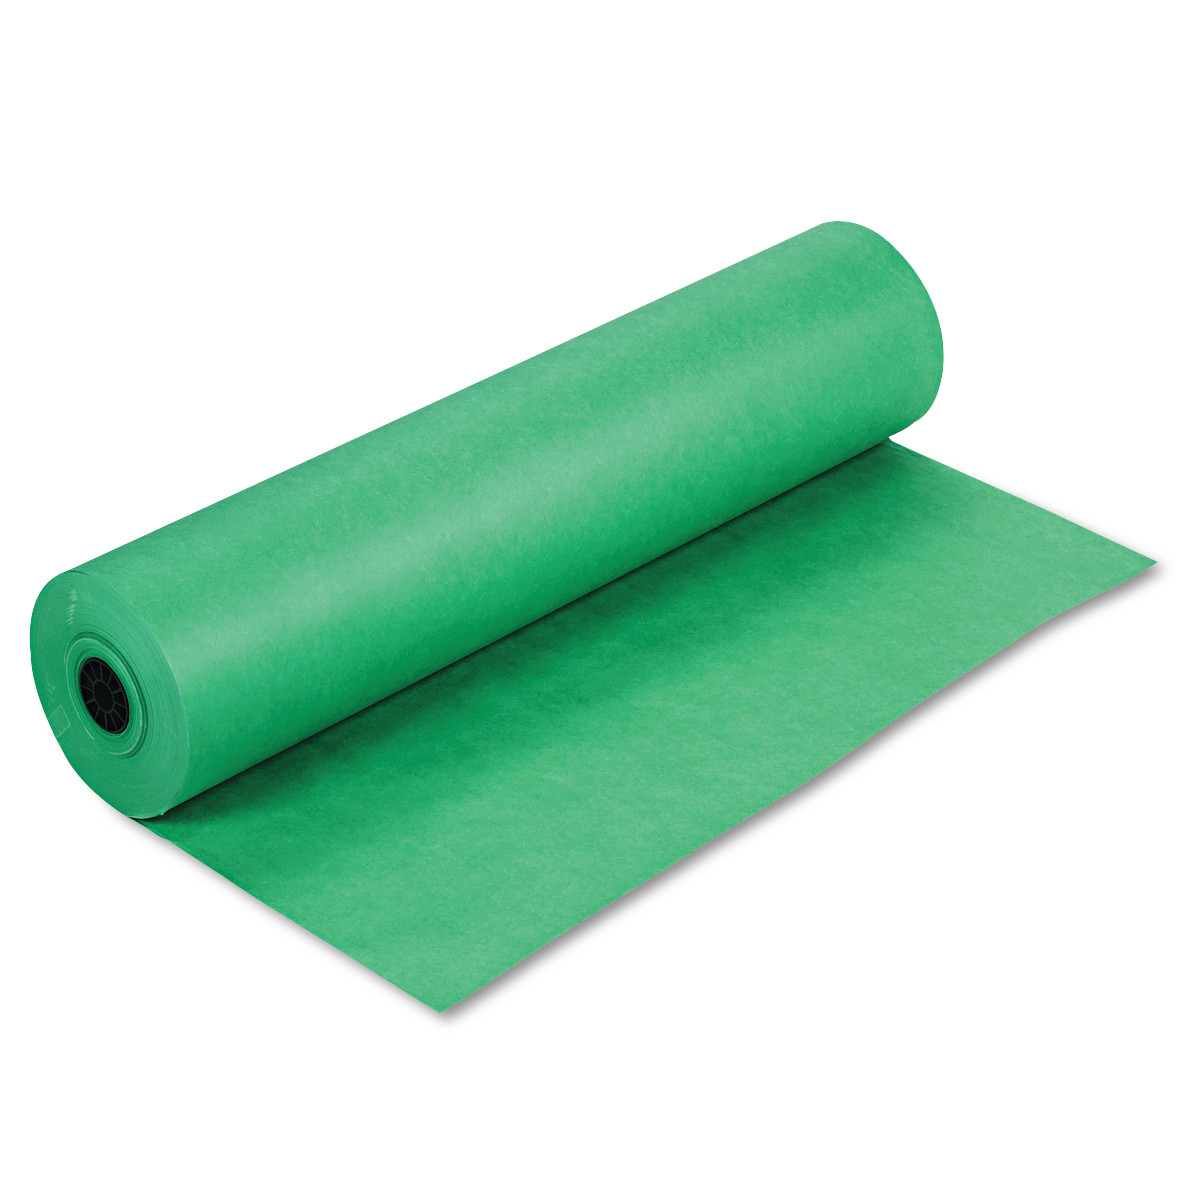 """Pacon Spectra ArtKraft Duo-Finish Paper, 48 lbs., 36"""" x 1000 ft, Bright Green"""